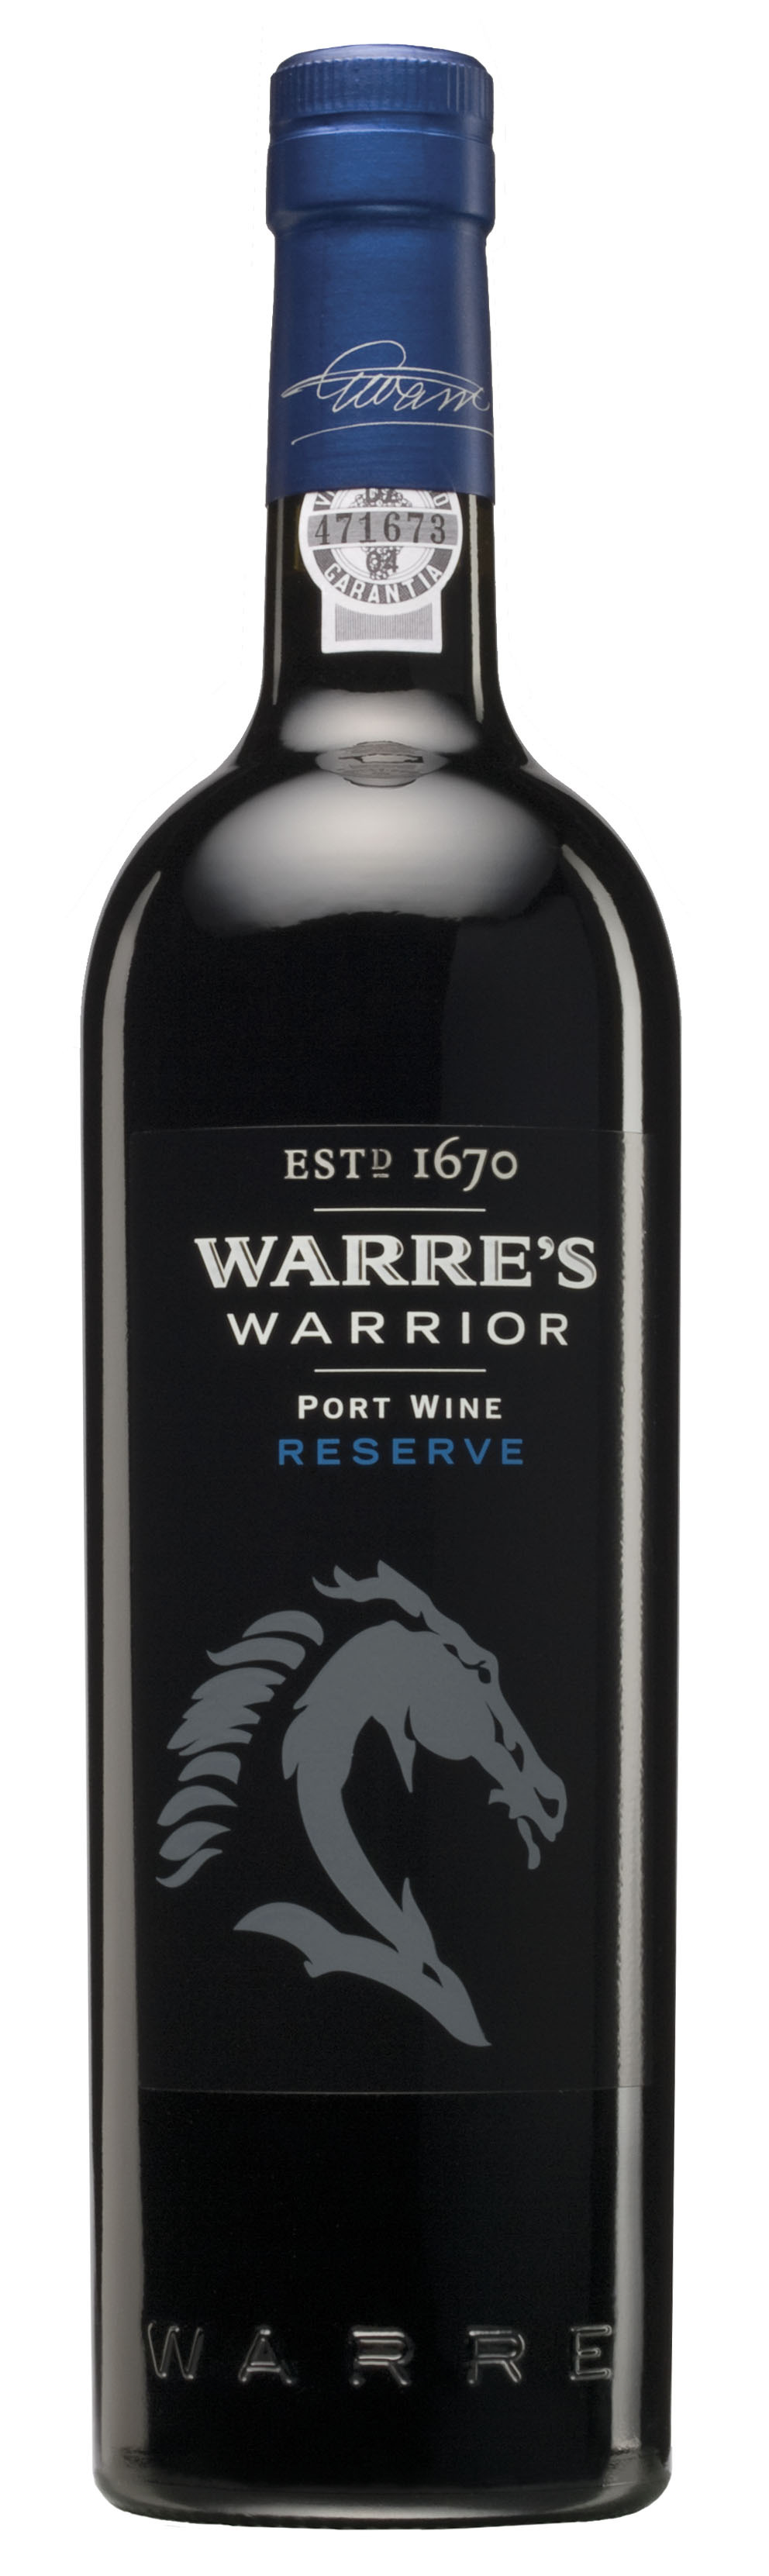 Warre's Warrior Reserve Port 我是戰神波特.jpg